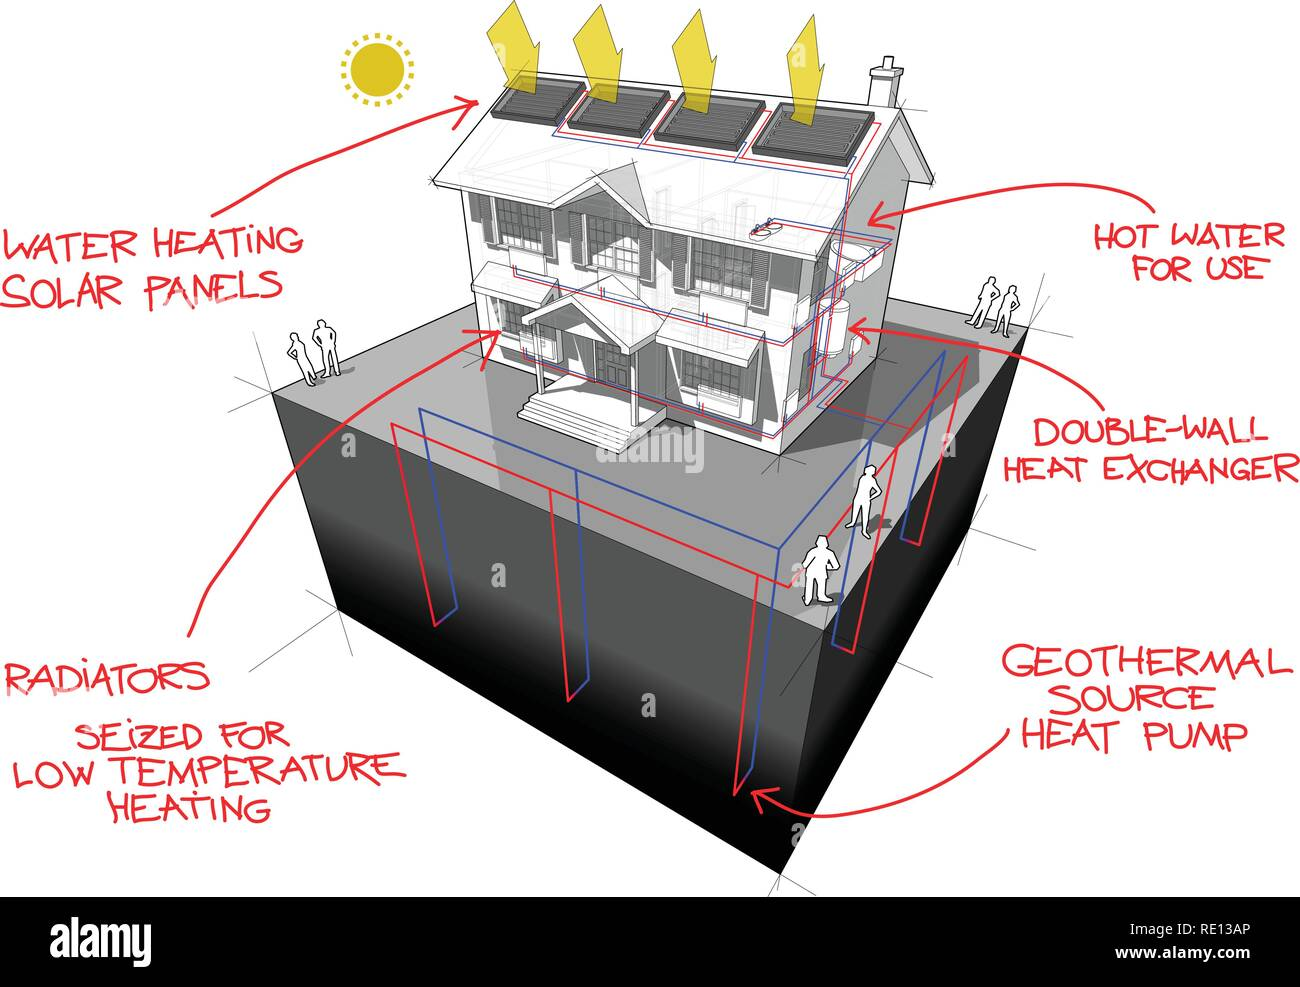 diagram of a classic colonial house with ground source heat pump and solar panels on the roof as source of energy for heating and radiators and red ha - Stock Vector